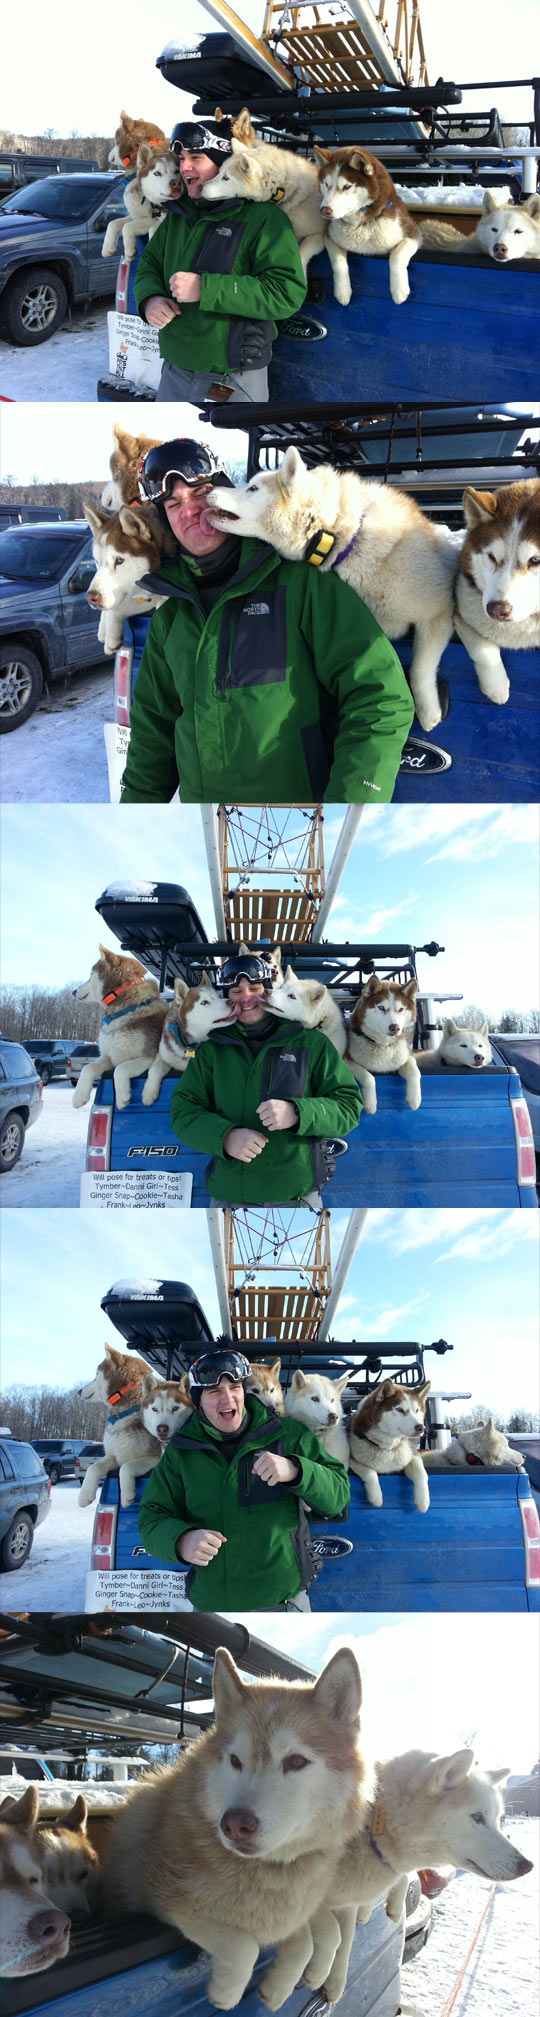 Some affectionate sled dogs…